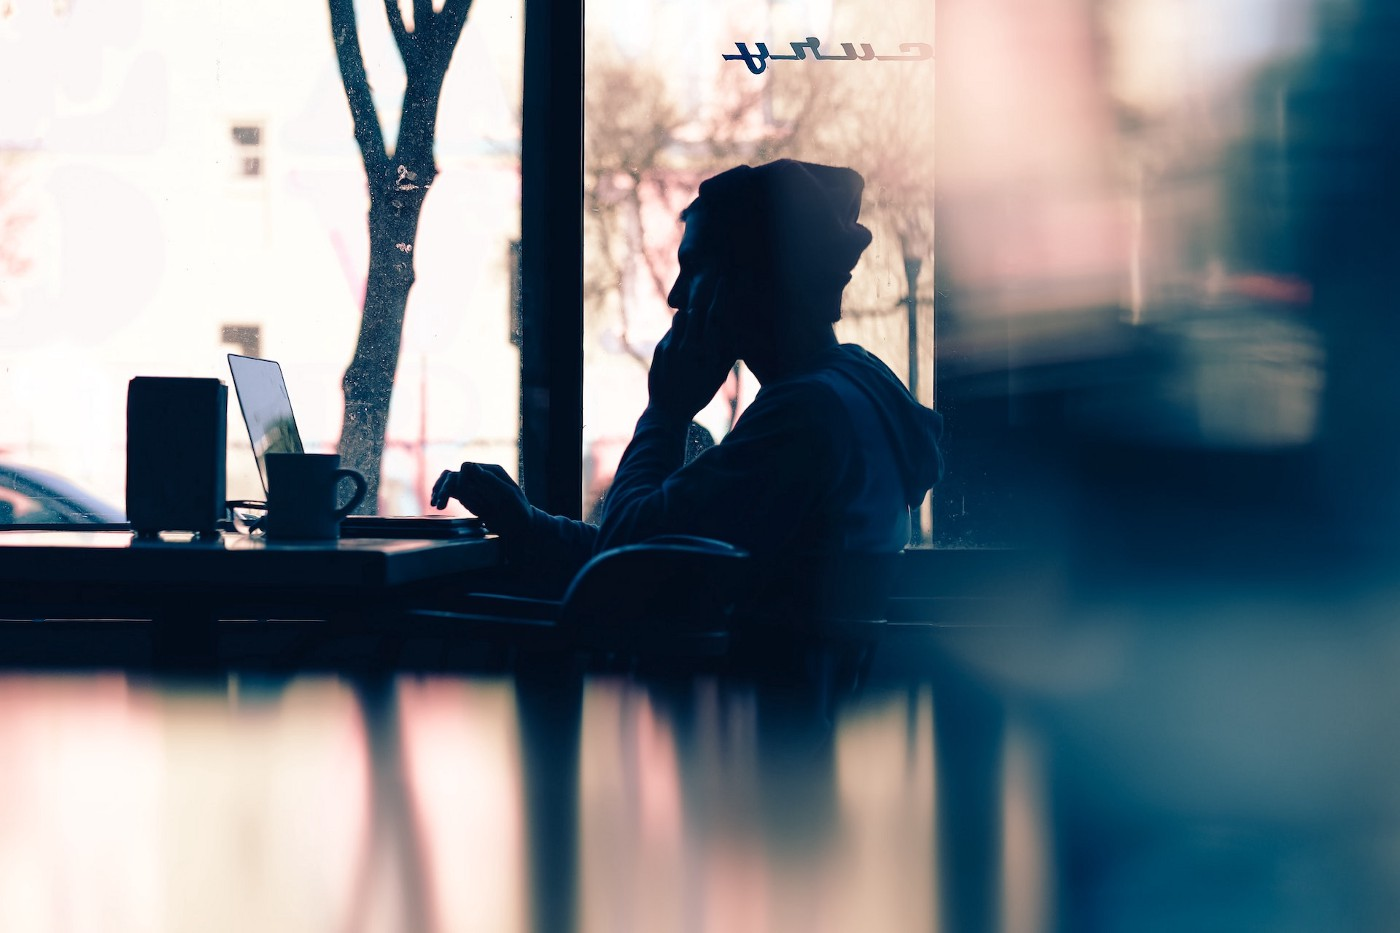 Person sitting at a desk with a laptop looking pensive.